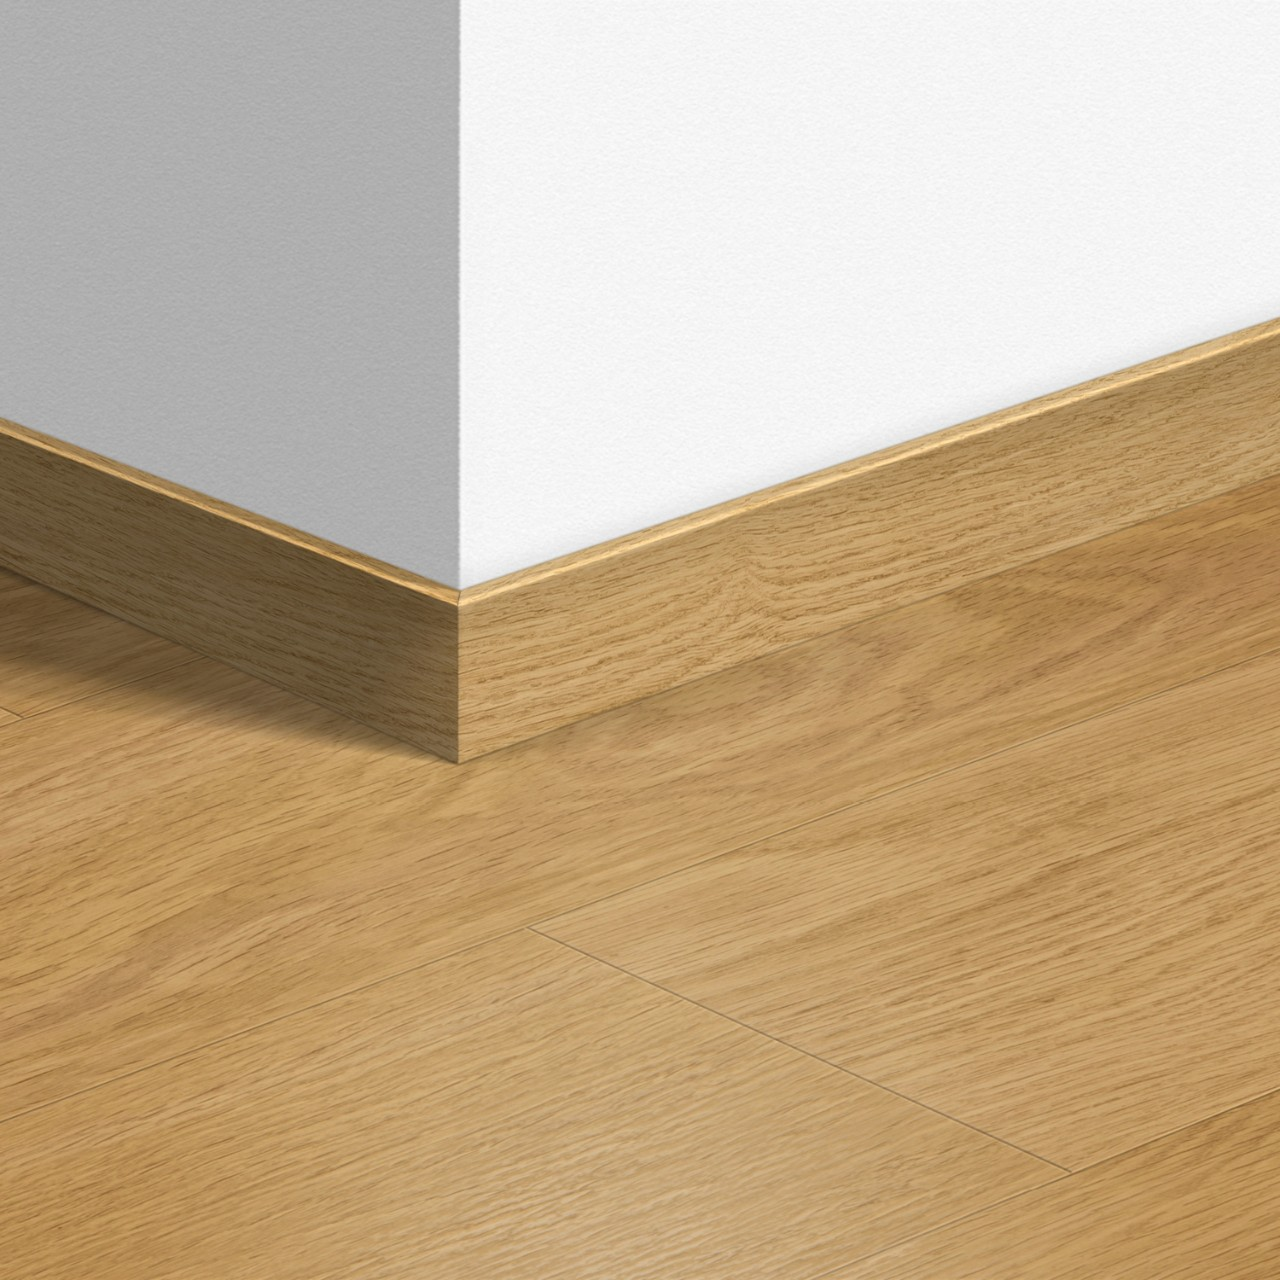 QSVSKRA Vinyl Accessories Select oak natural QSVSKRA40033